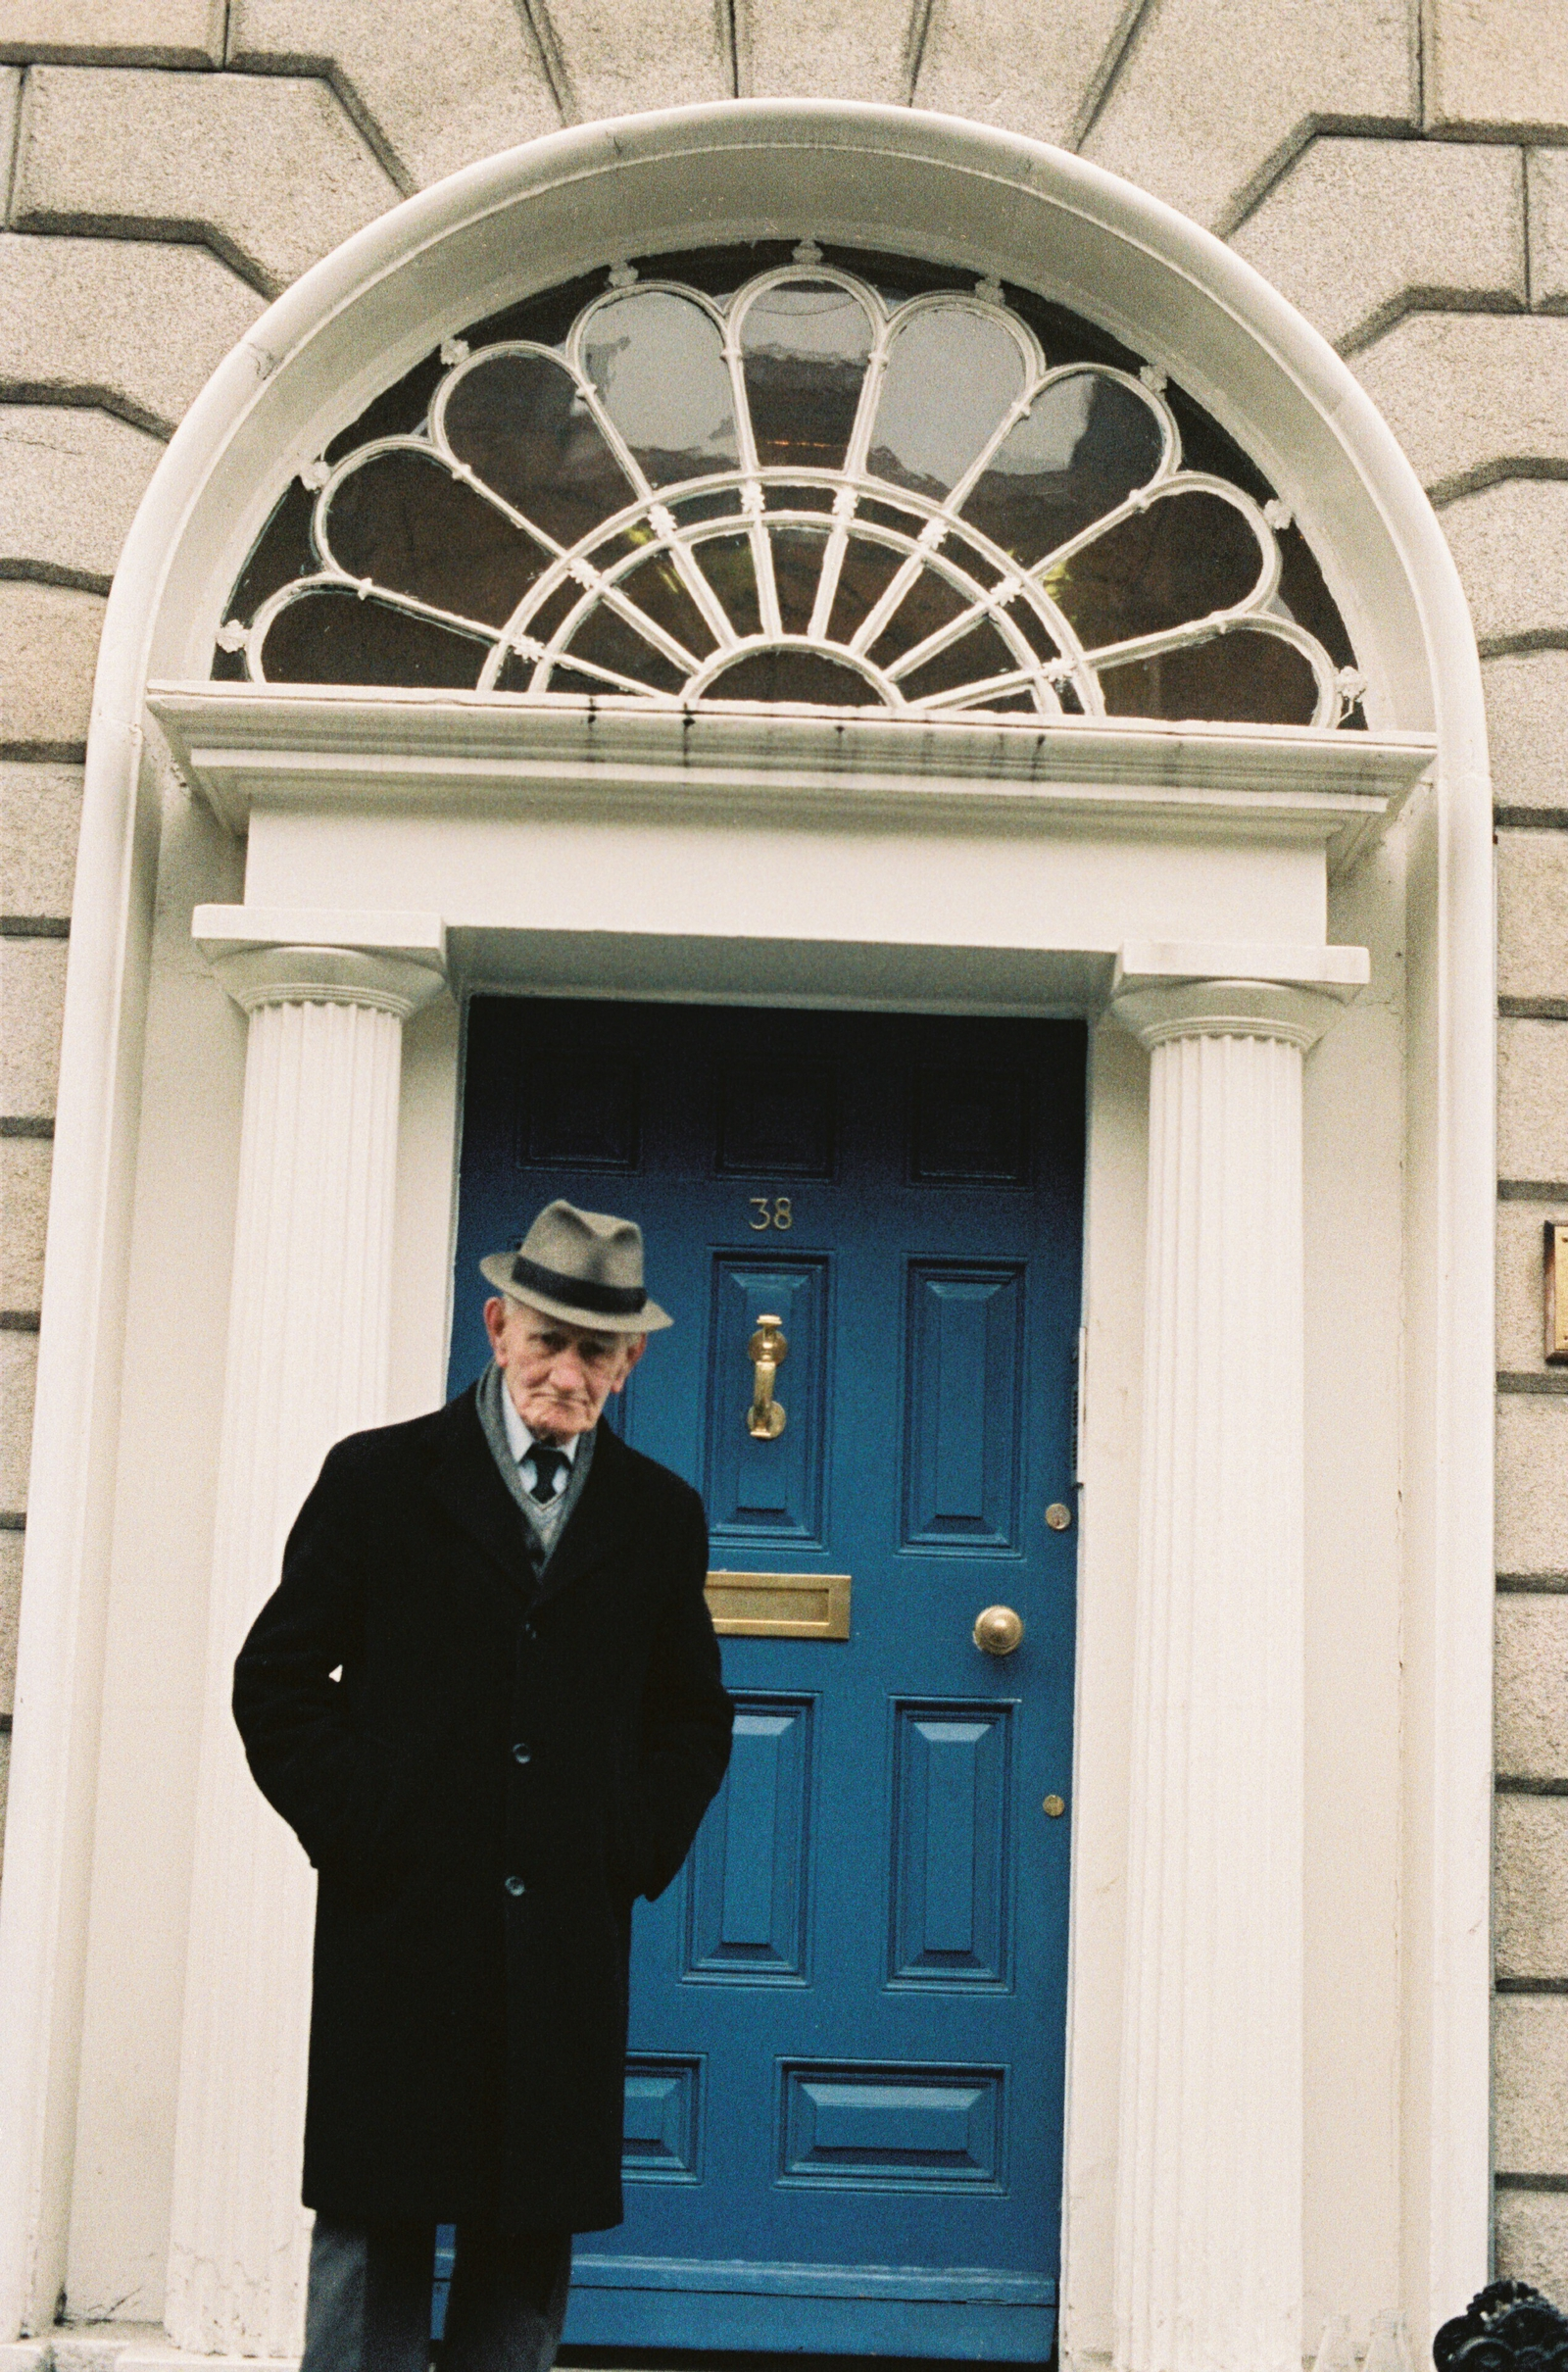 Image - IRA man and member of 'The Squad' Vinnie Byrne outside 38 Mount Street Upper, 1987 (Credit: RTE Stills Library)